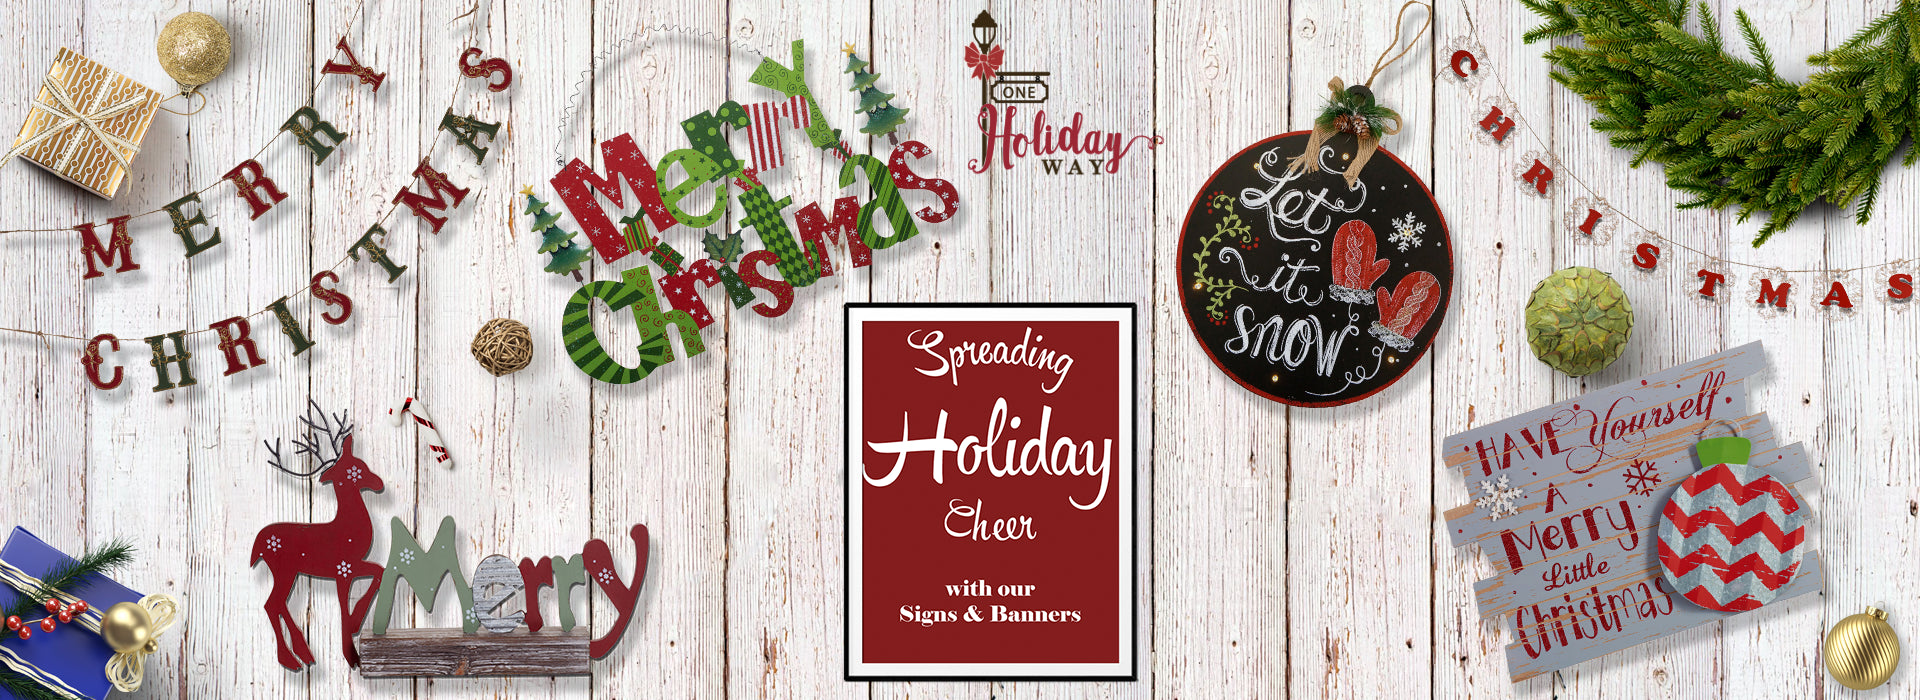 Christmas Signs Banners Holiday Wall Art One Holiday Way